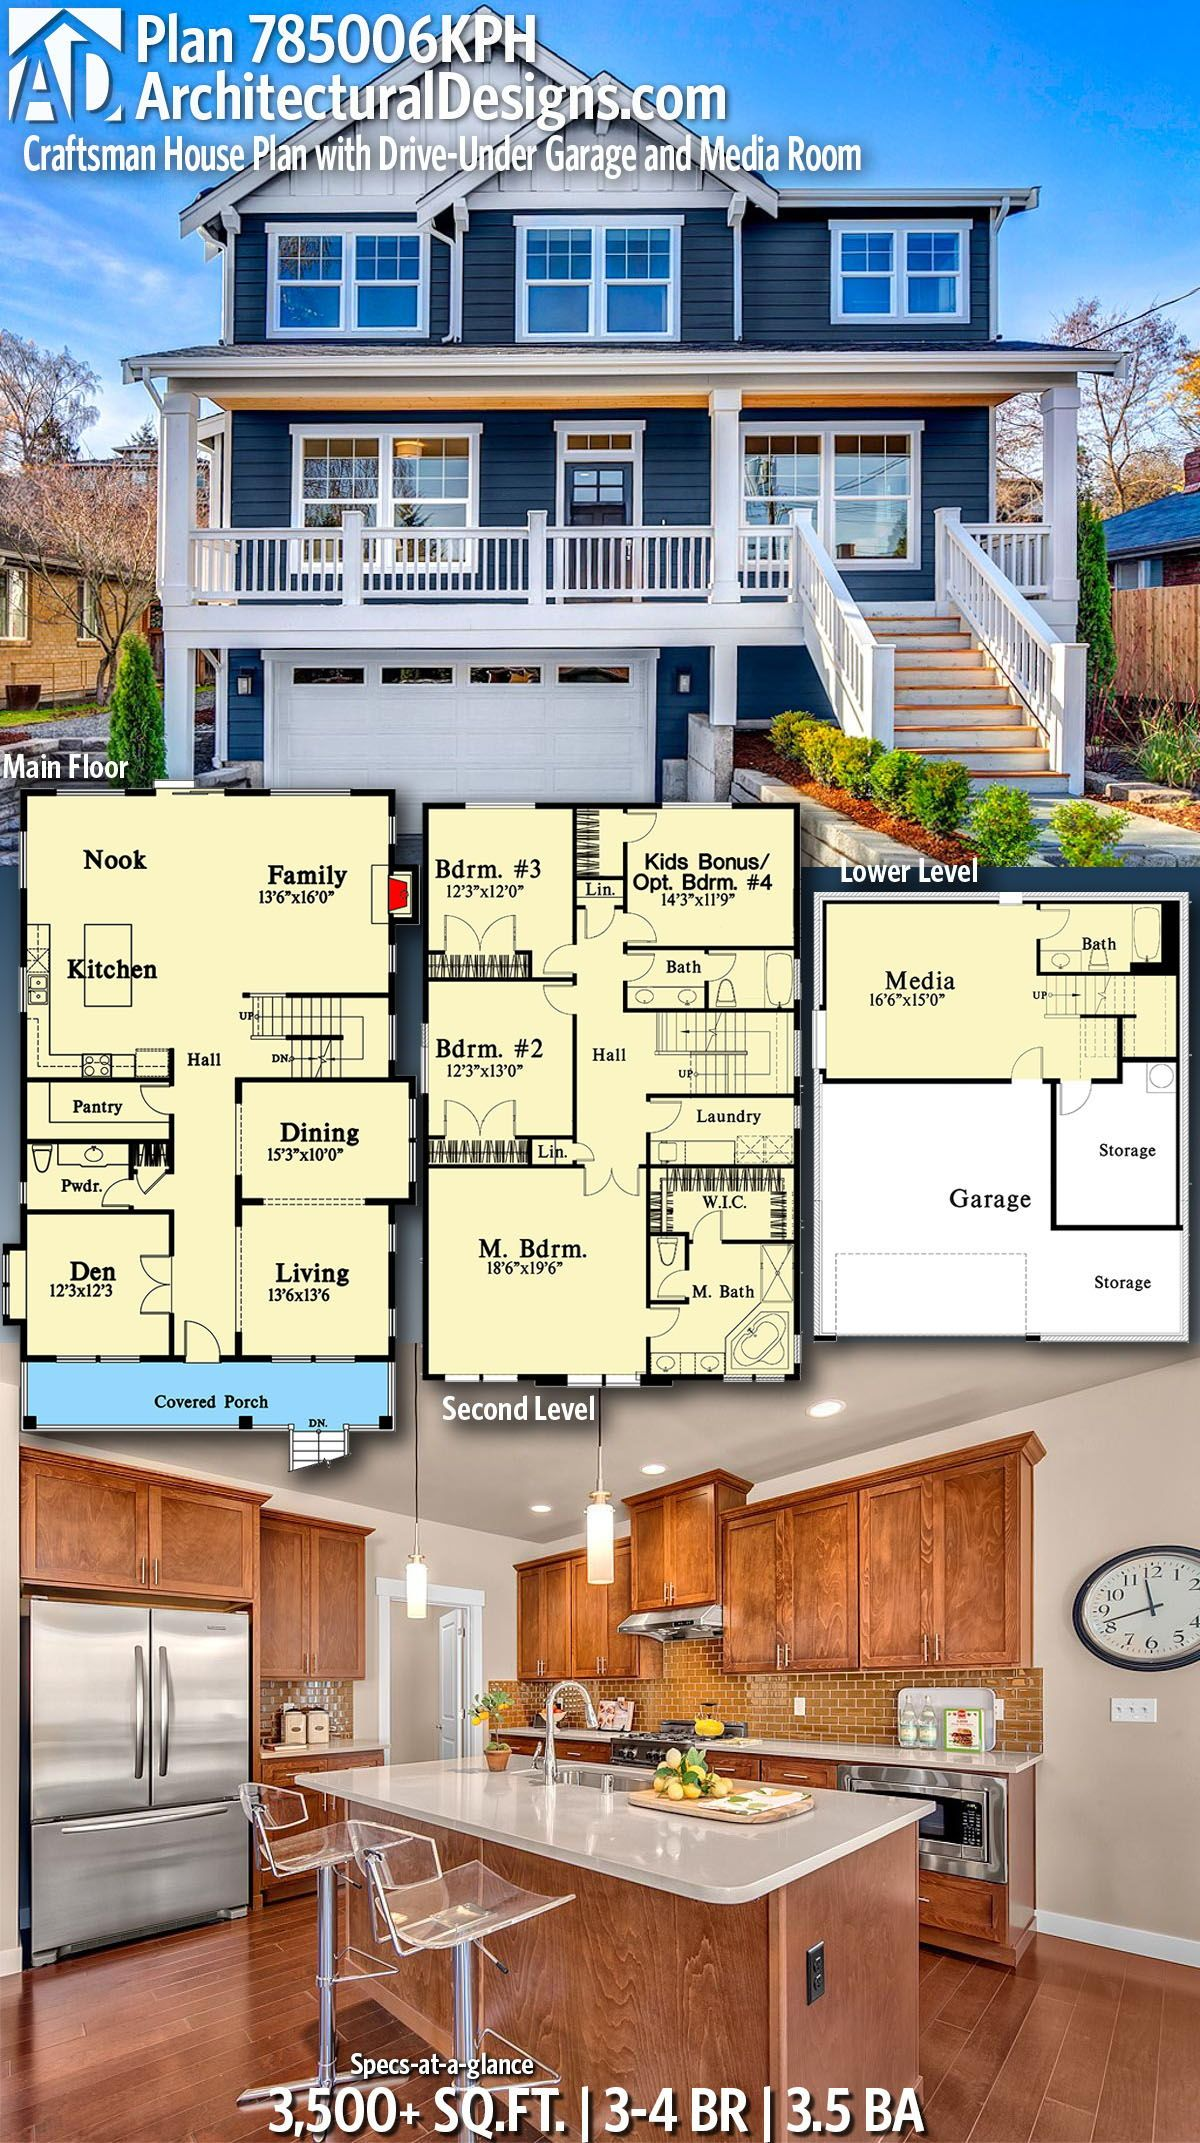 Architectural designs home plan kph gives you bedrooms baths and also  floor plans layout house in rh pinterest